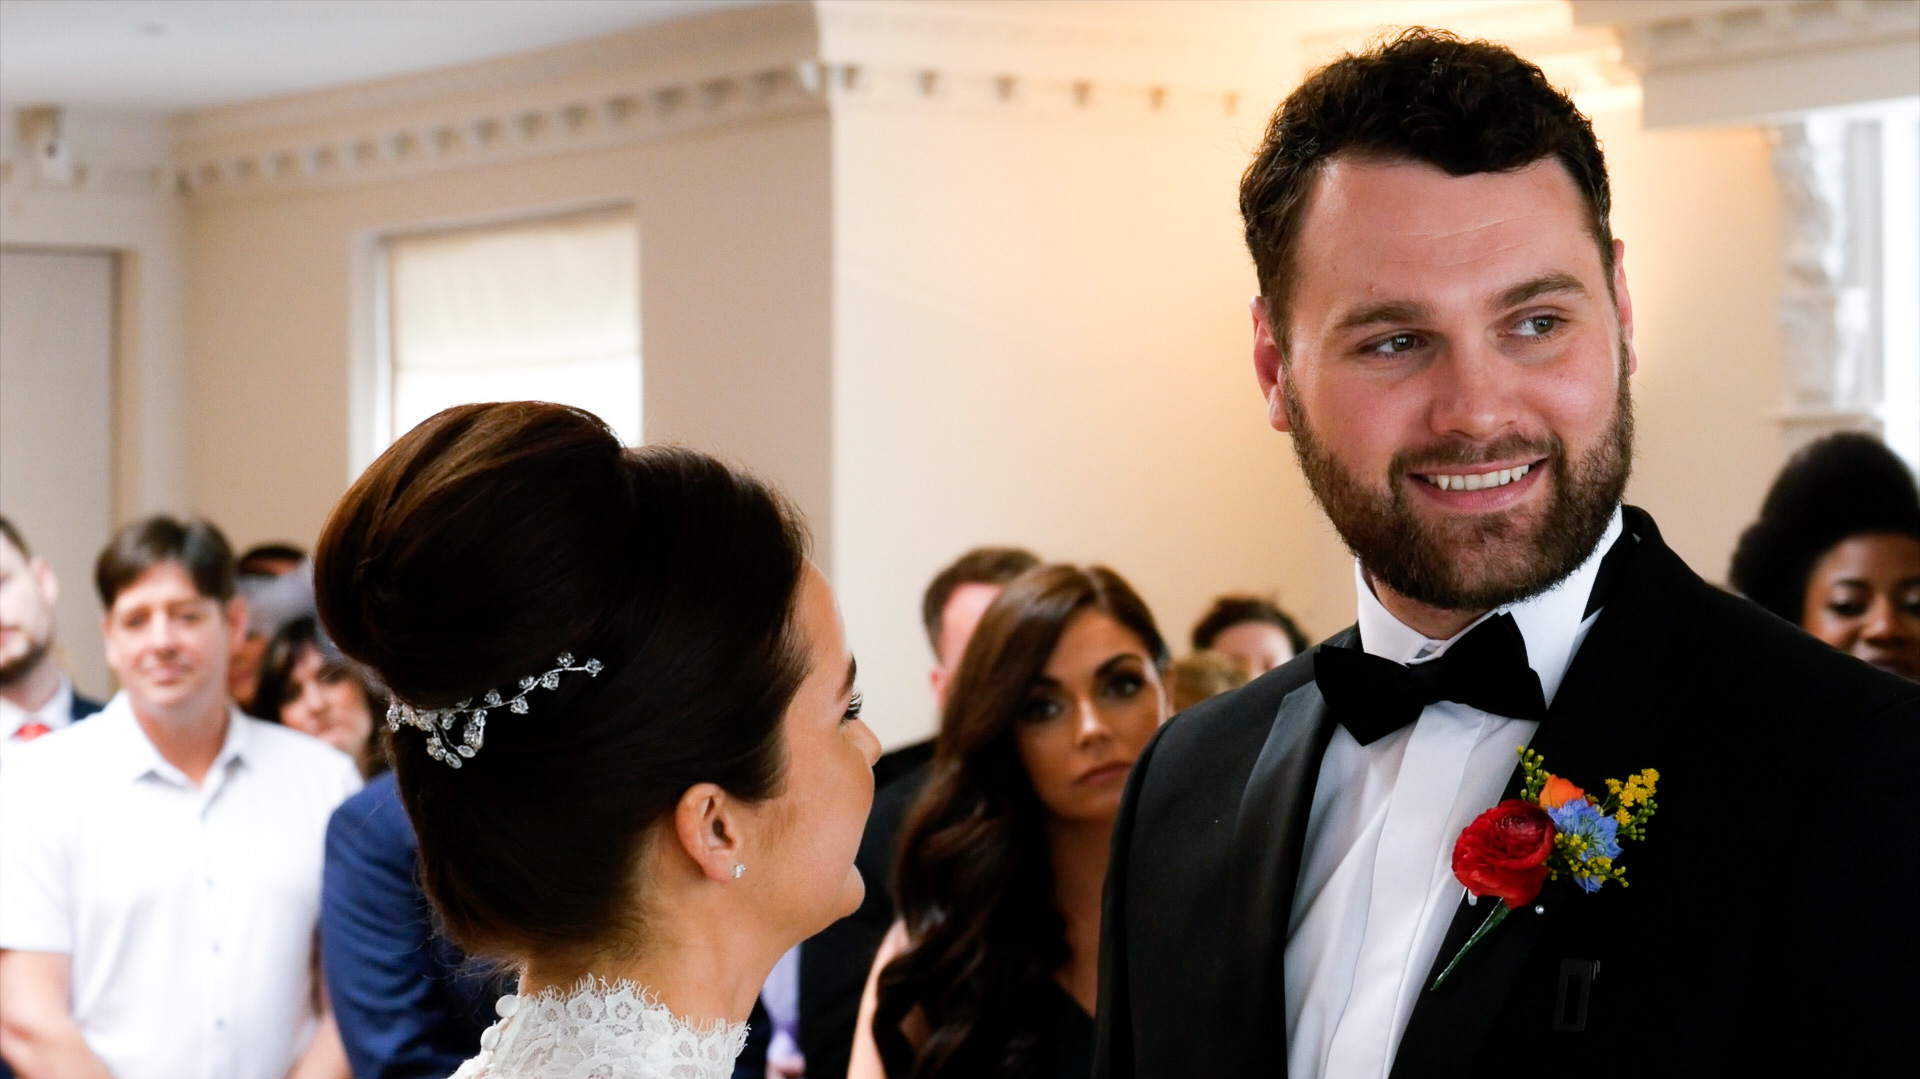 Luke smiles with great pride and joy during his wedding ceremony segment of his north west wedding video at Ashfield House.